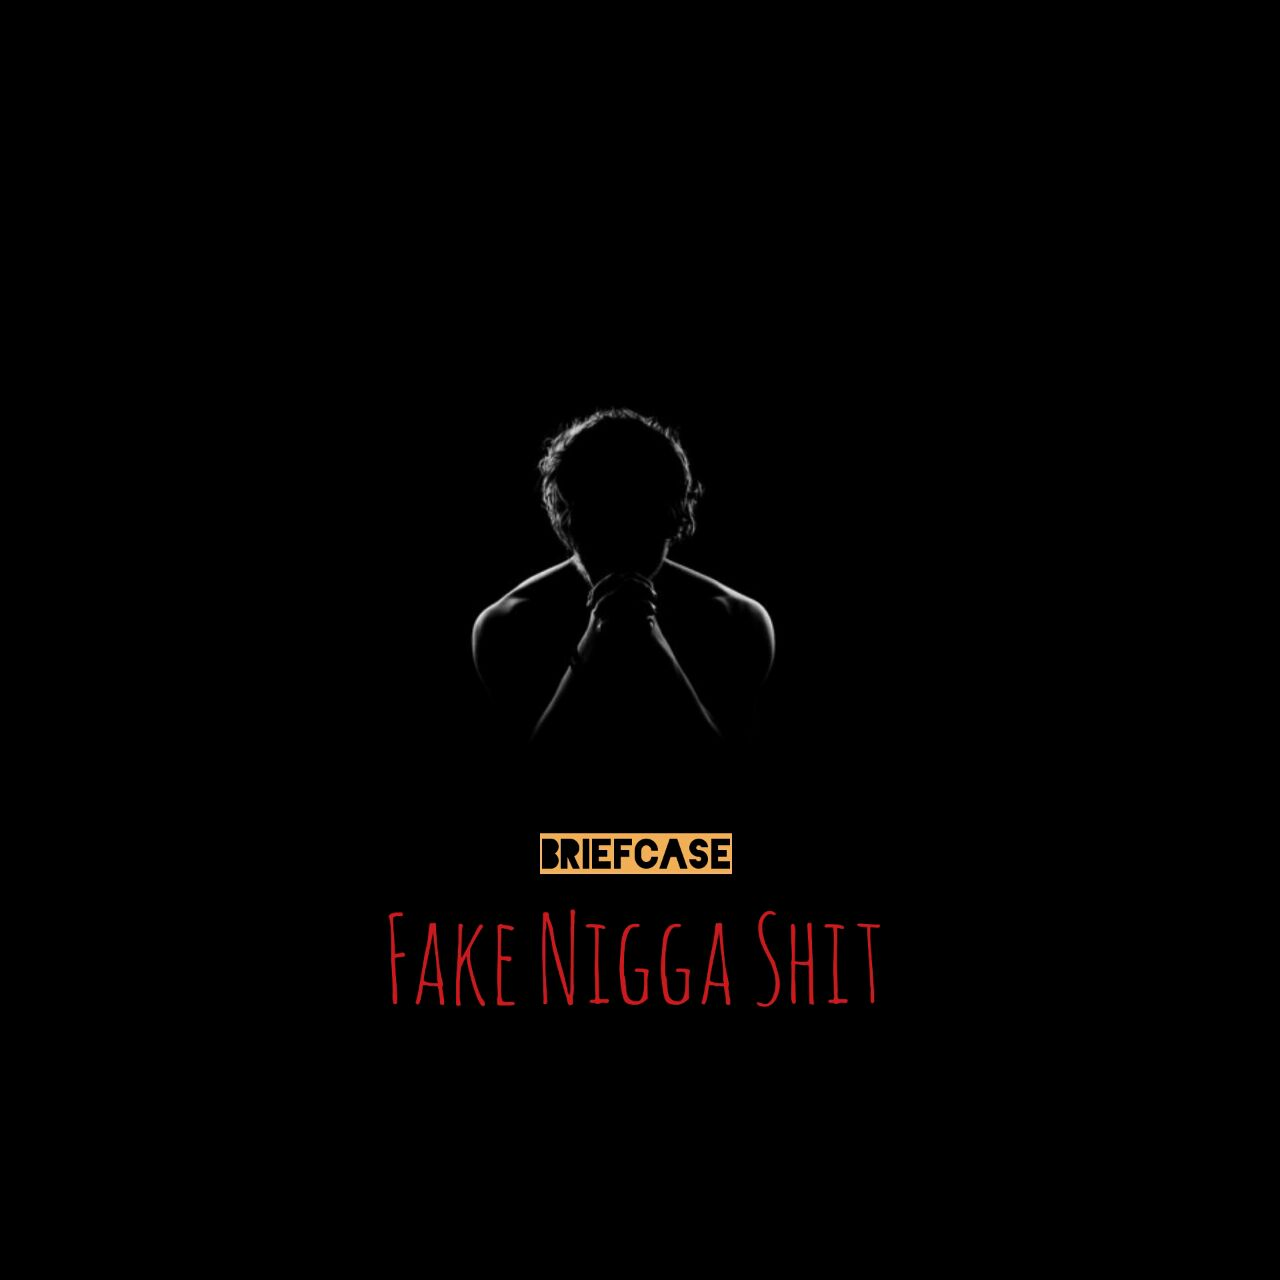 Briefcase_Fake Nigga Shit_mixby_Yaw Face